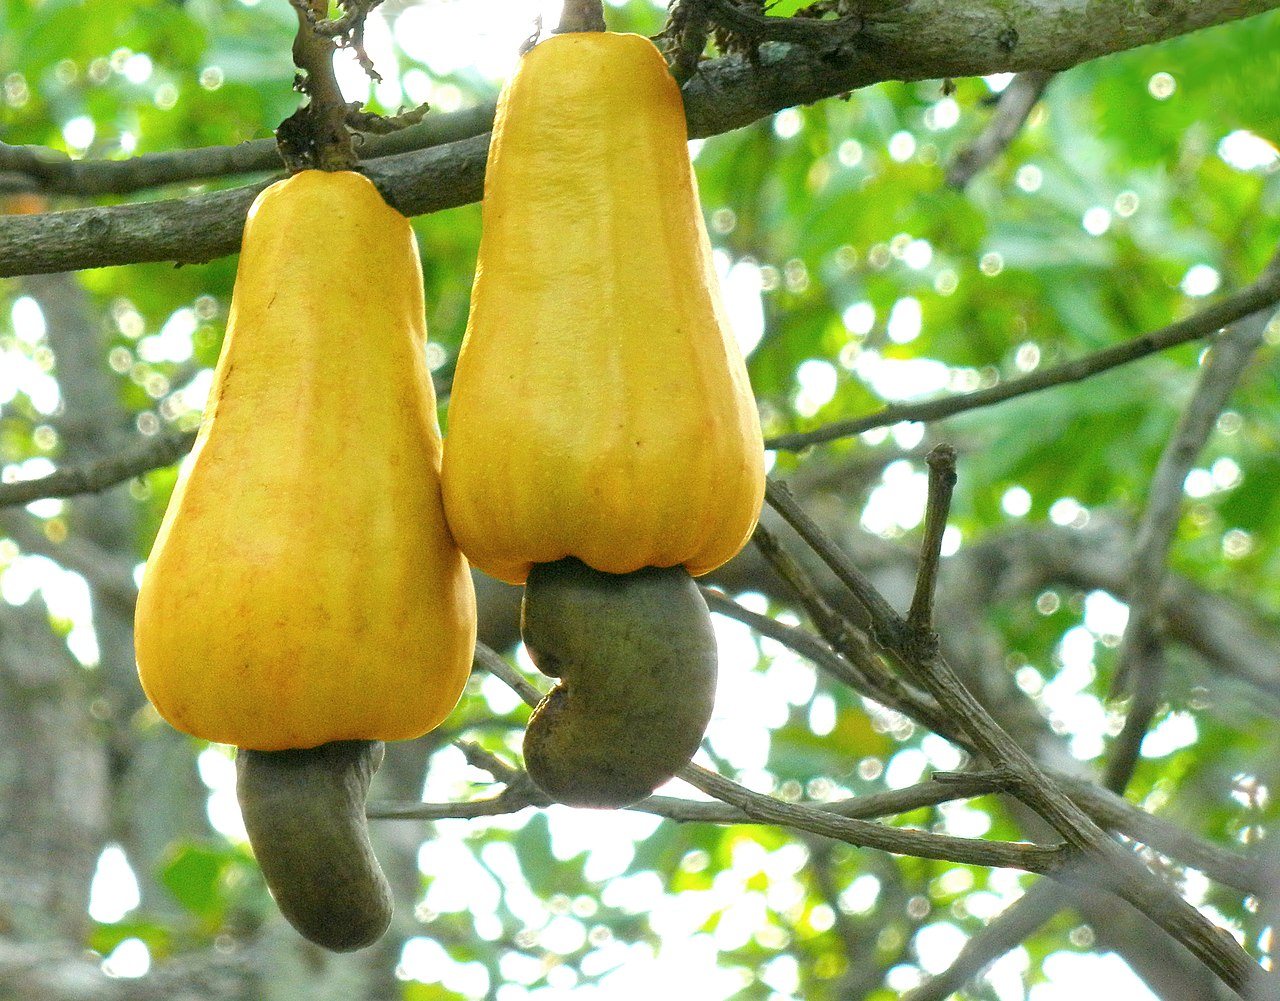 Cashew apples.jpg